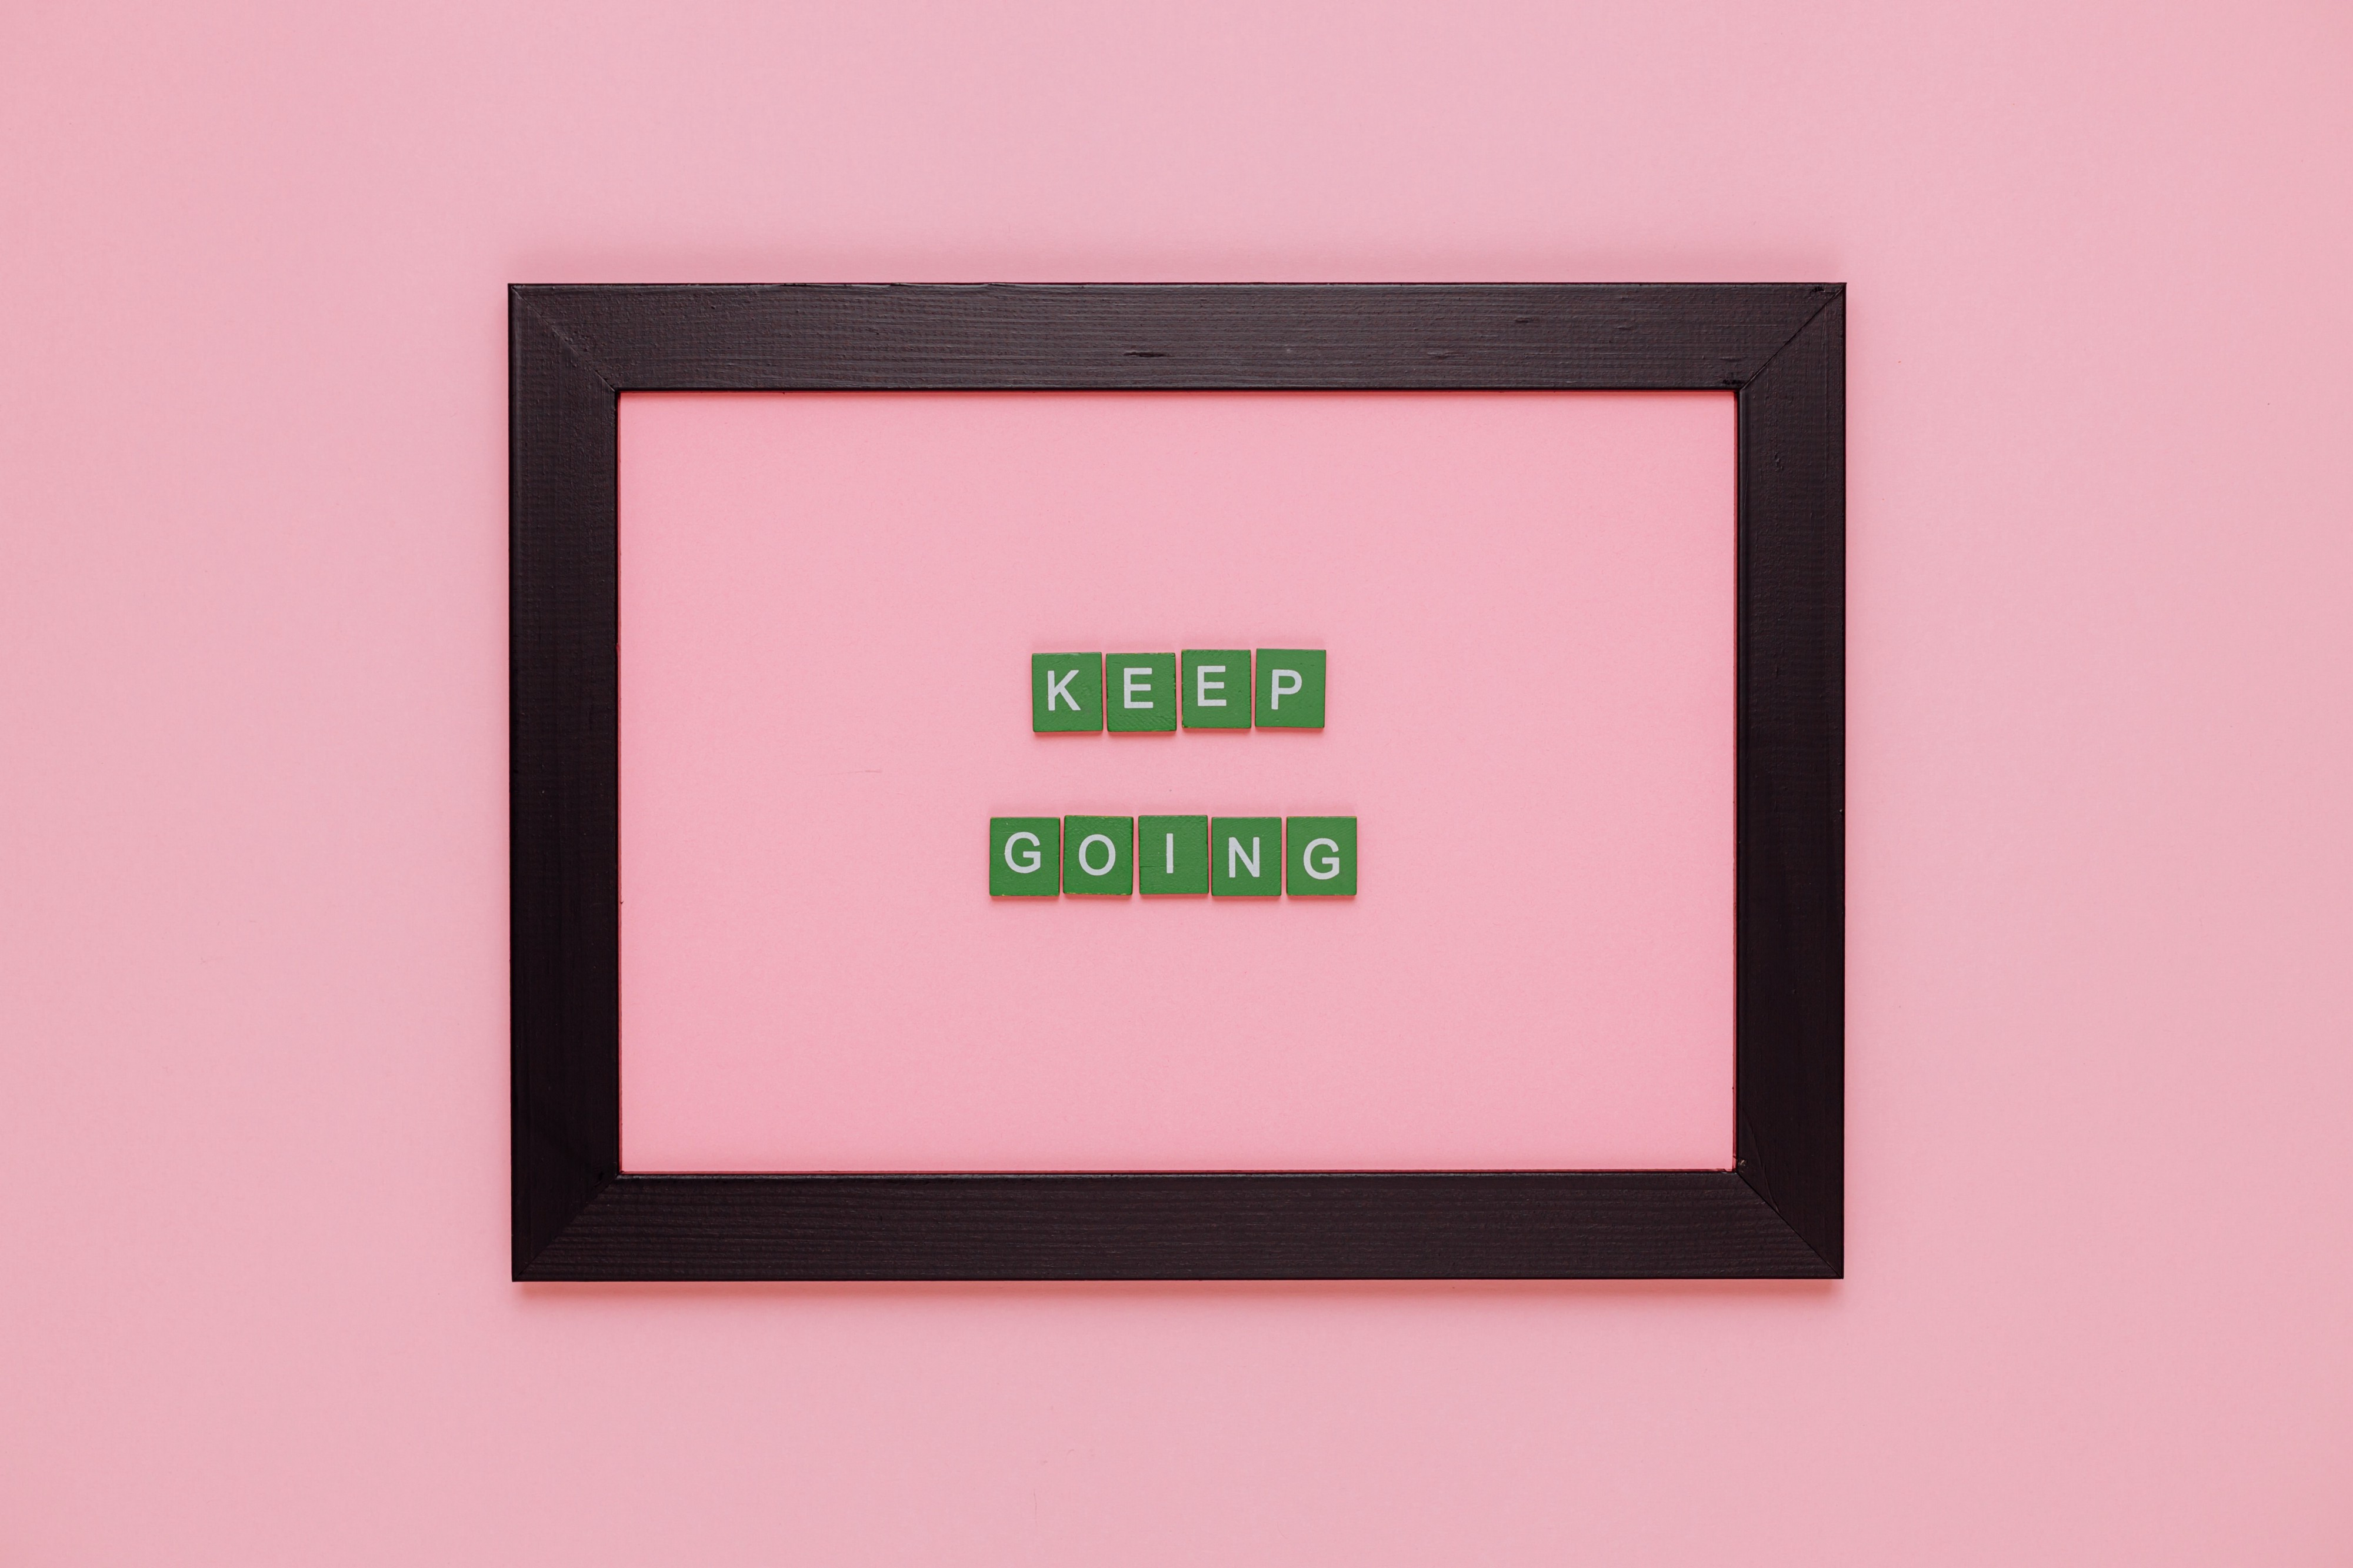 """Pink frame that says """"KEEP GOING"""" in small green block letters."""